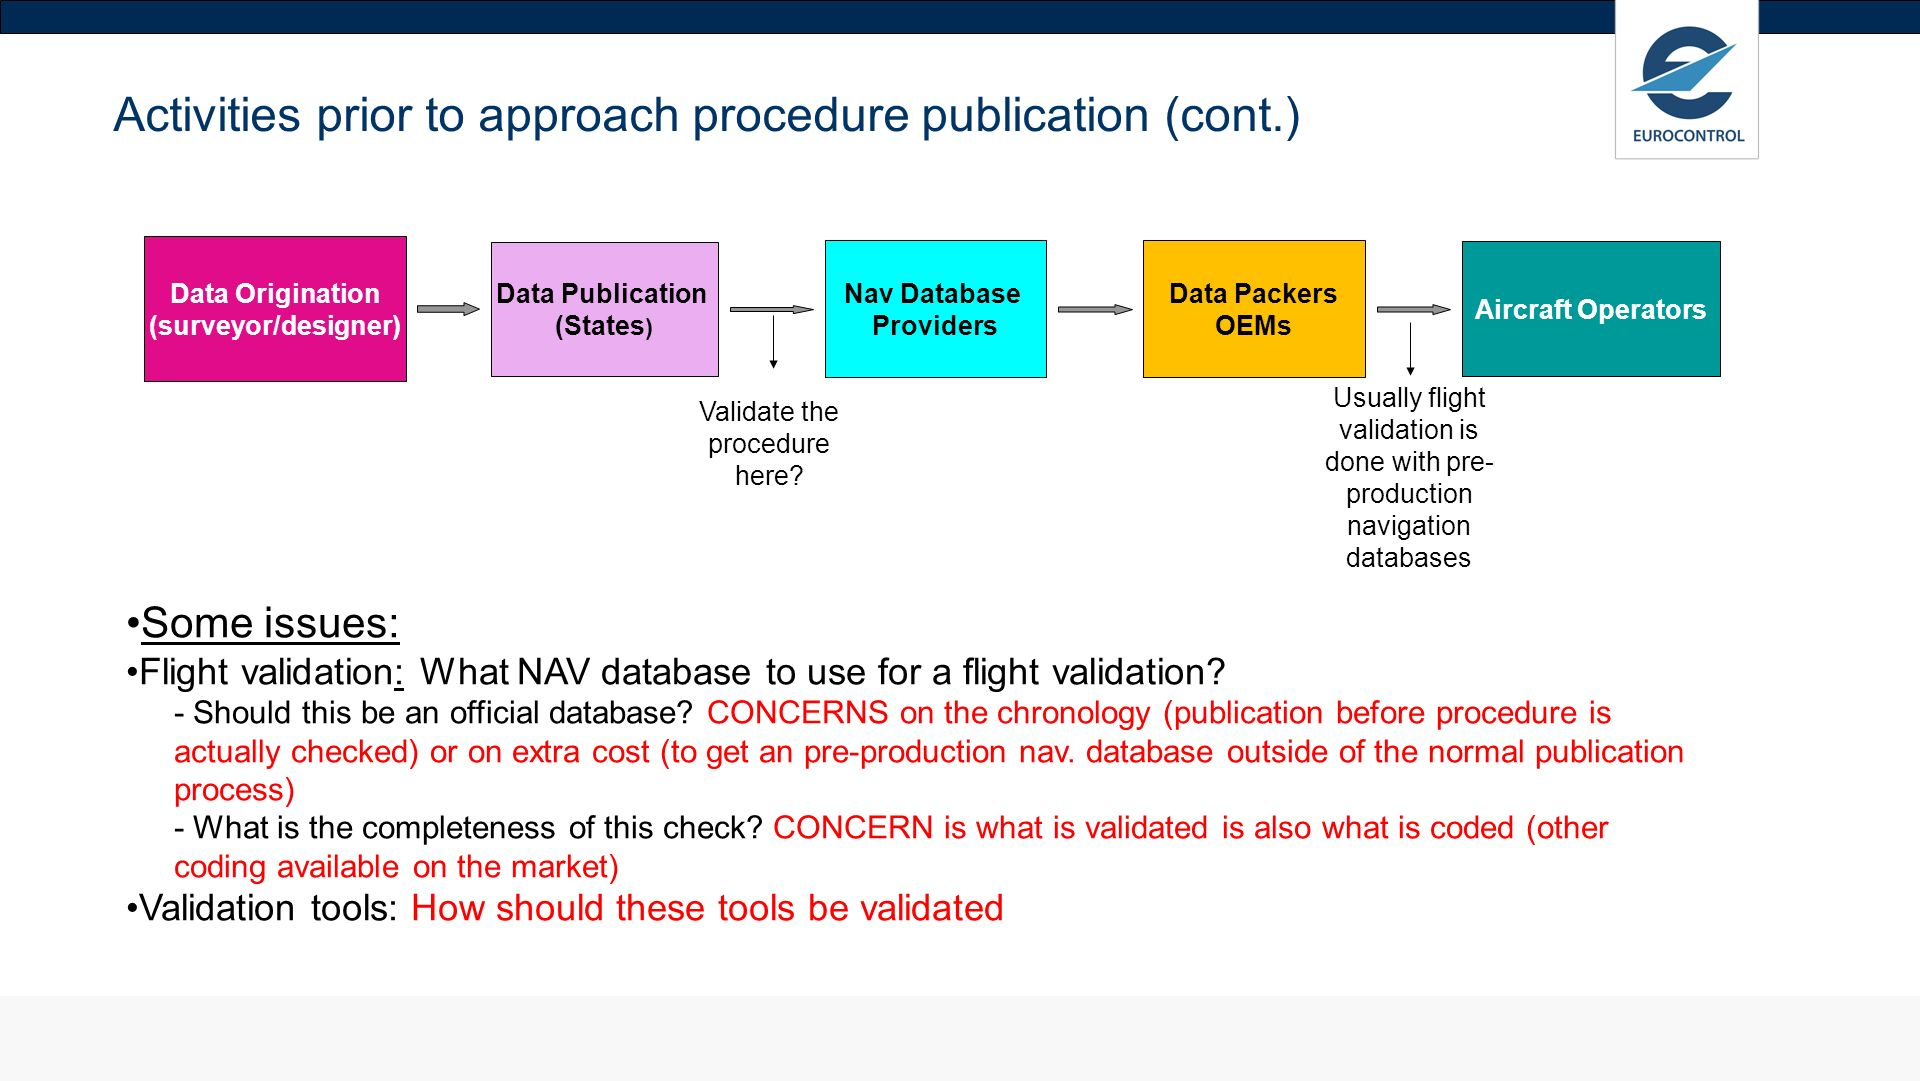 Activities prior to approach procedure publication (cont.)